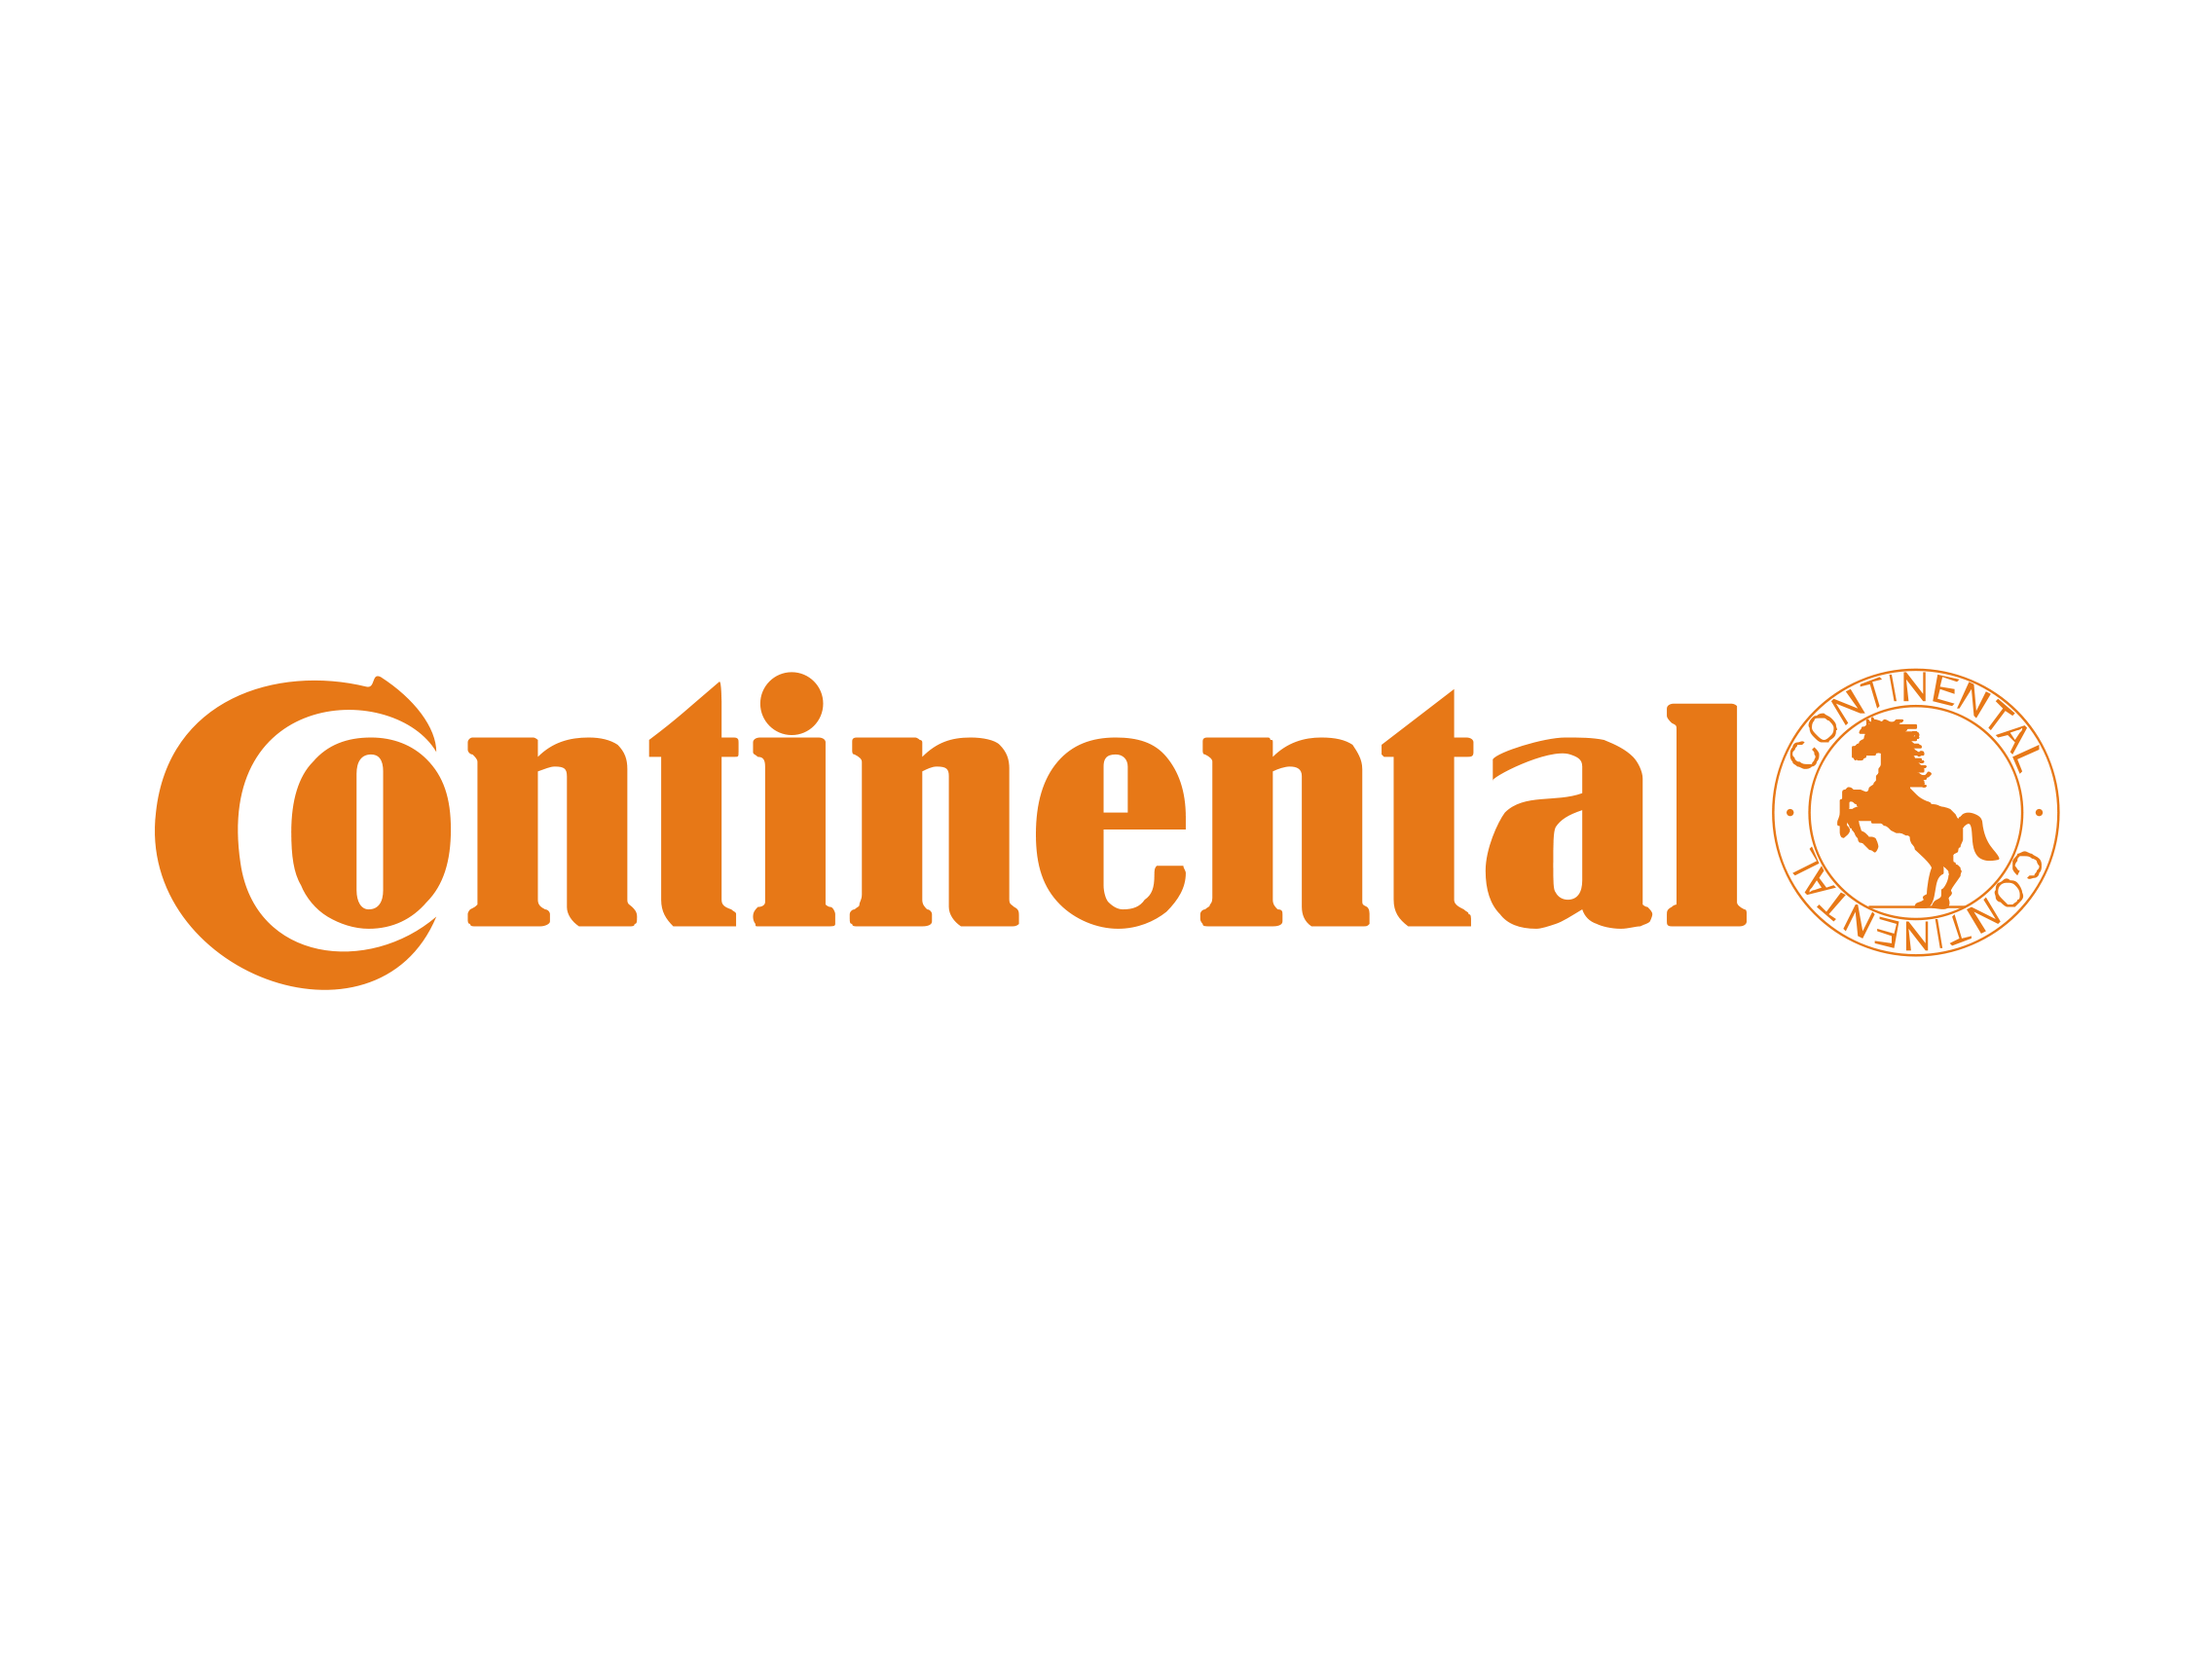 Continental Logo - Continental, Transparent background PNG HD thumbnail